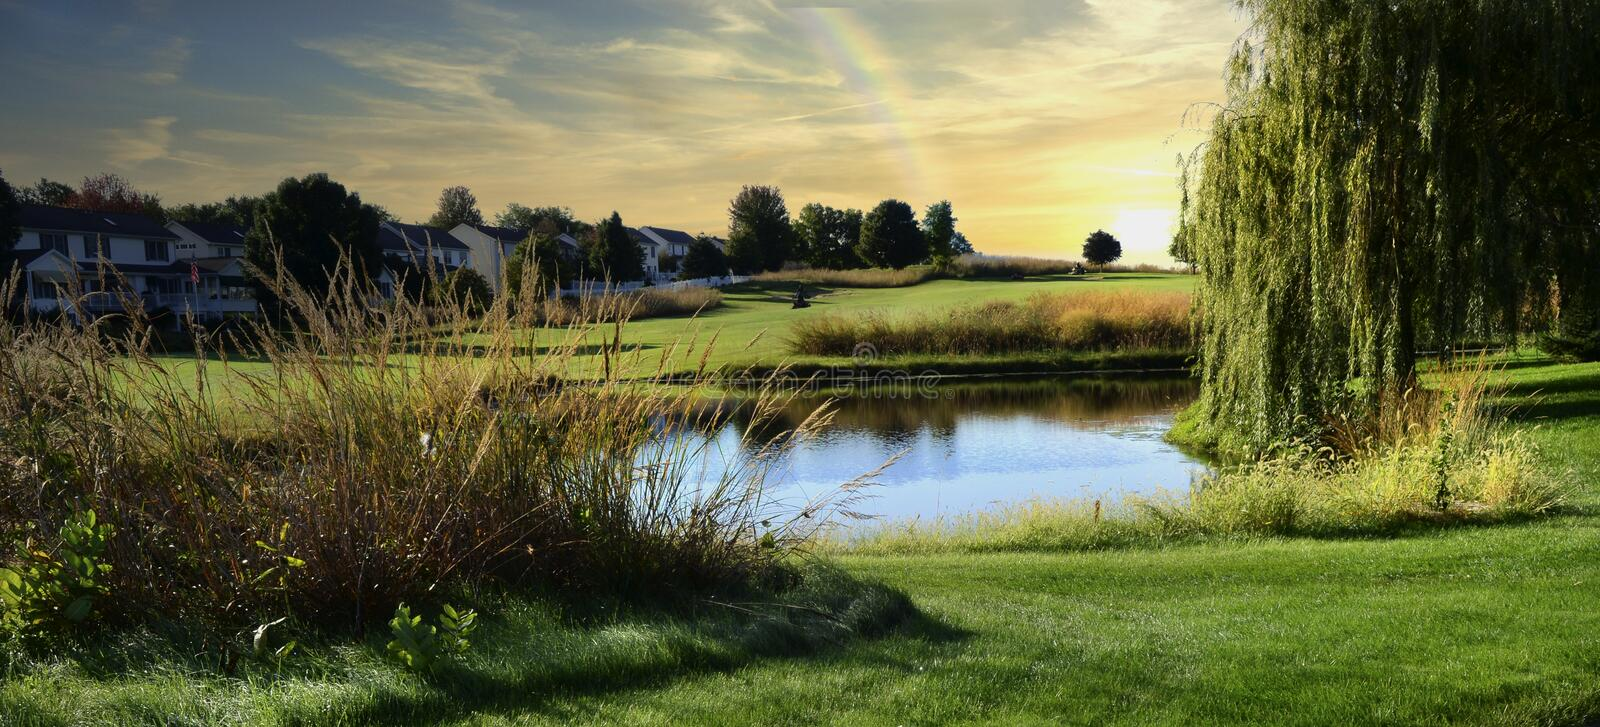 Peaceful view of a golf course during sunset royalty free stock image